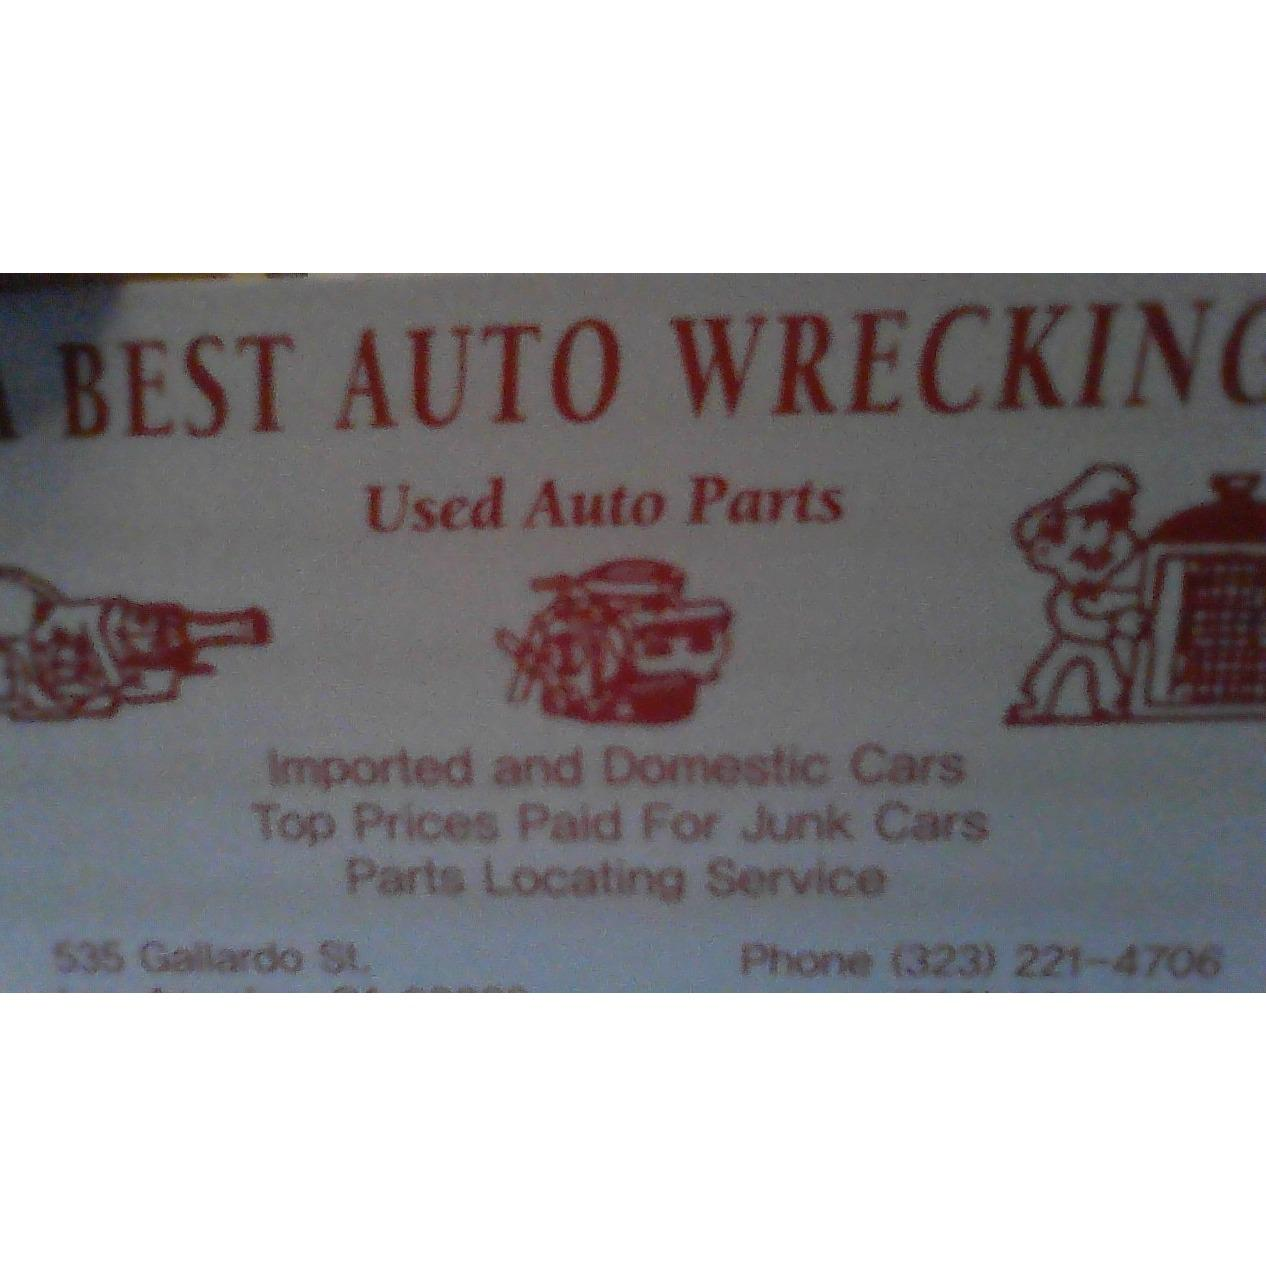 A best auto wrecking